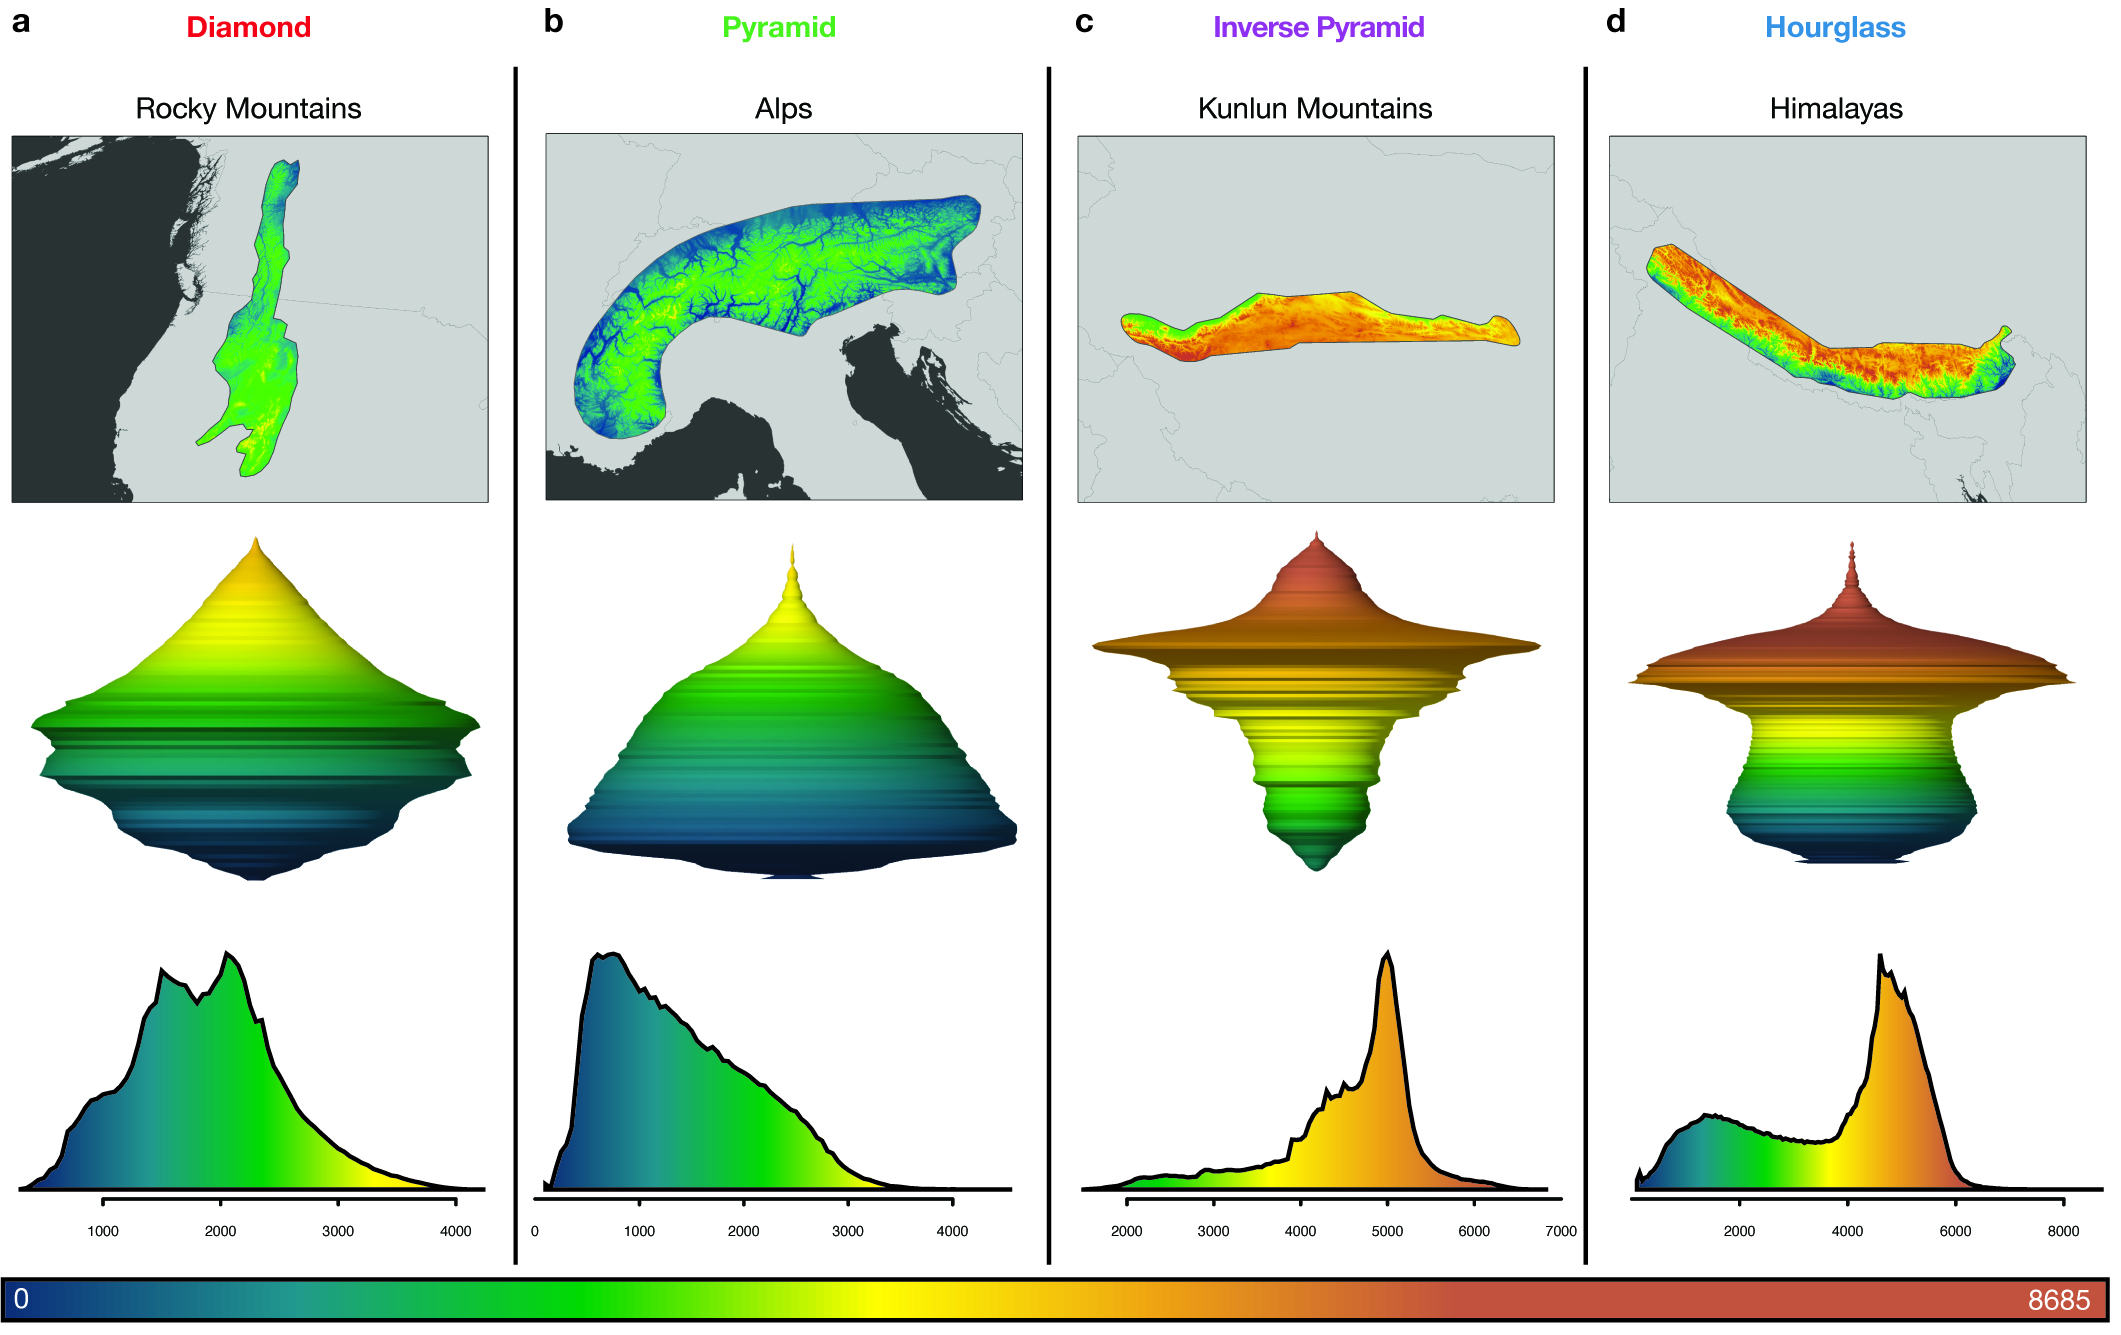 The researchers found that the 182 mountain ranges they studied have four principal shapes. Diamond-shaped ranges such as the Rocky Mountains (a) increase in land area from the bottom until mid-elevation before contracting quickly. Pyramid-shaped mountains such as the Alps (b) have sides that rise sharply and consistently decrease in area the higher they go. The Kunlun Mountains (c) of China take the form of inverse pyramids, which gradually expand in area as elevation increases before suddenly widening toward their peaks. For hourglass-shaped mountain ranges such as the Himalayas (d), land area rises slightly then decreases at mid-elevations before increasing sharply at higher elevations. The three-dimensional images (second row) represent each range shape as viewed from the side. Moving from bottom to top, the width of the shape changes to represent an increase or decrease in area at a specific elevation. Elevation spans from zero to more than 8,685 meters (28,494 feet), and is denoted by the color scale from blue (lowest elevation) to brown (highest elevation). (Image by Paul Elsen, Princeton University Department of Ecology and Evolutionary Biology; Morgan Tingley, University of Connecticut; and Mike Costelloe)